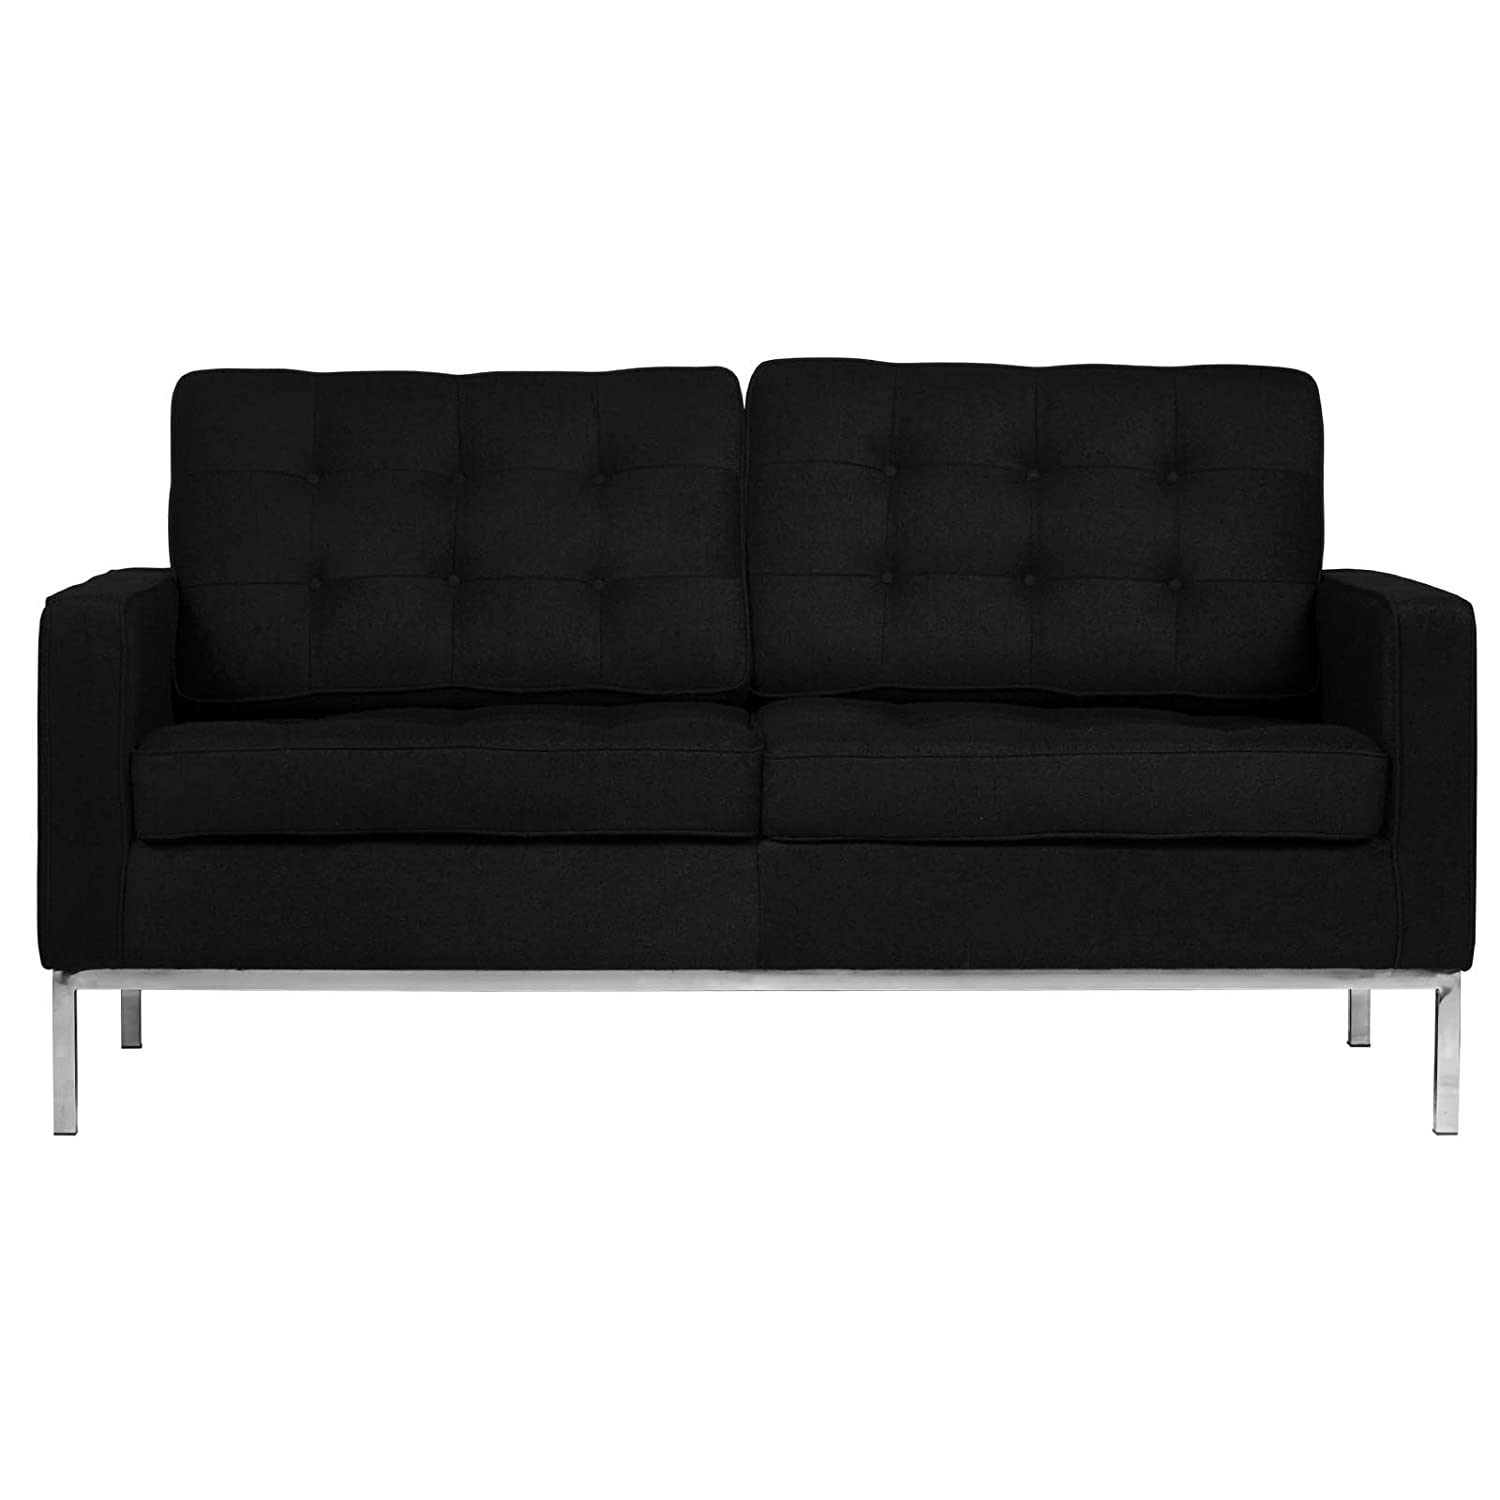 LeisureMod® Modern Florence Style Fabric Loveseat Sofa in Black Wool